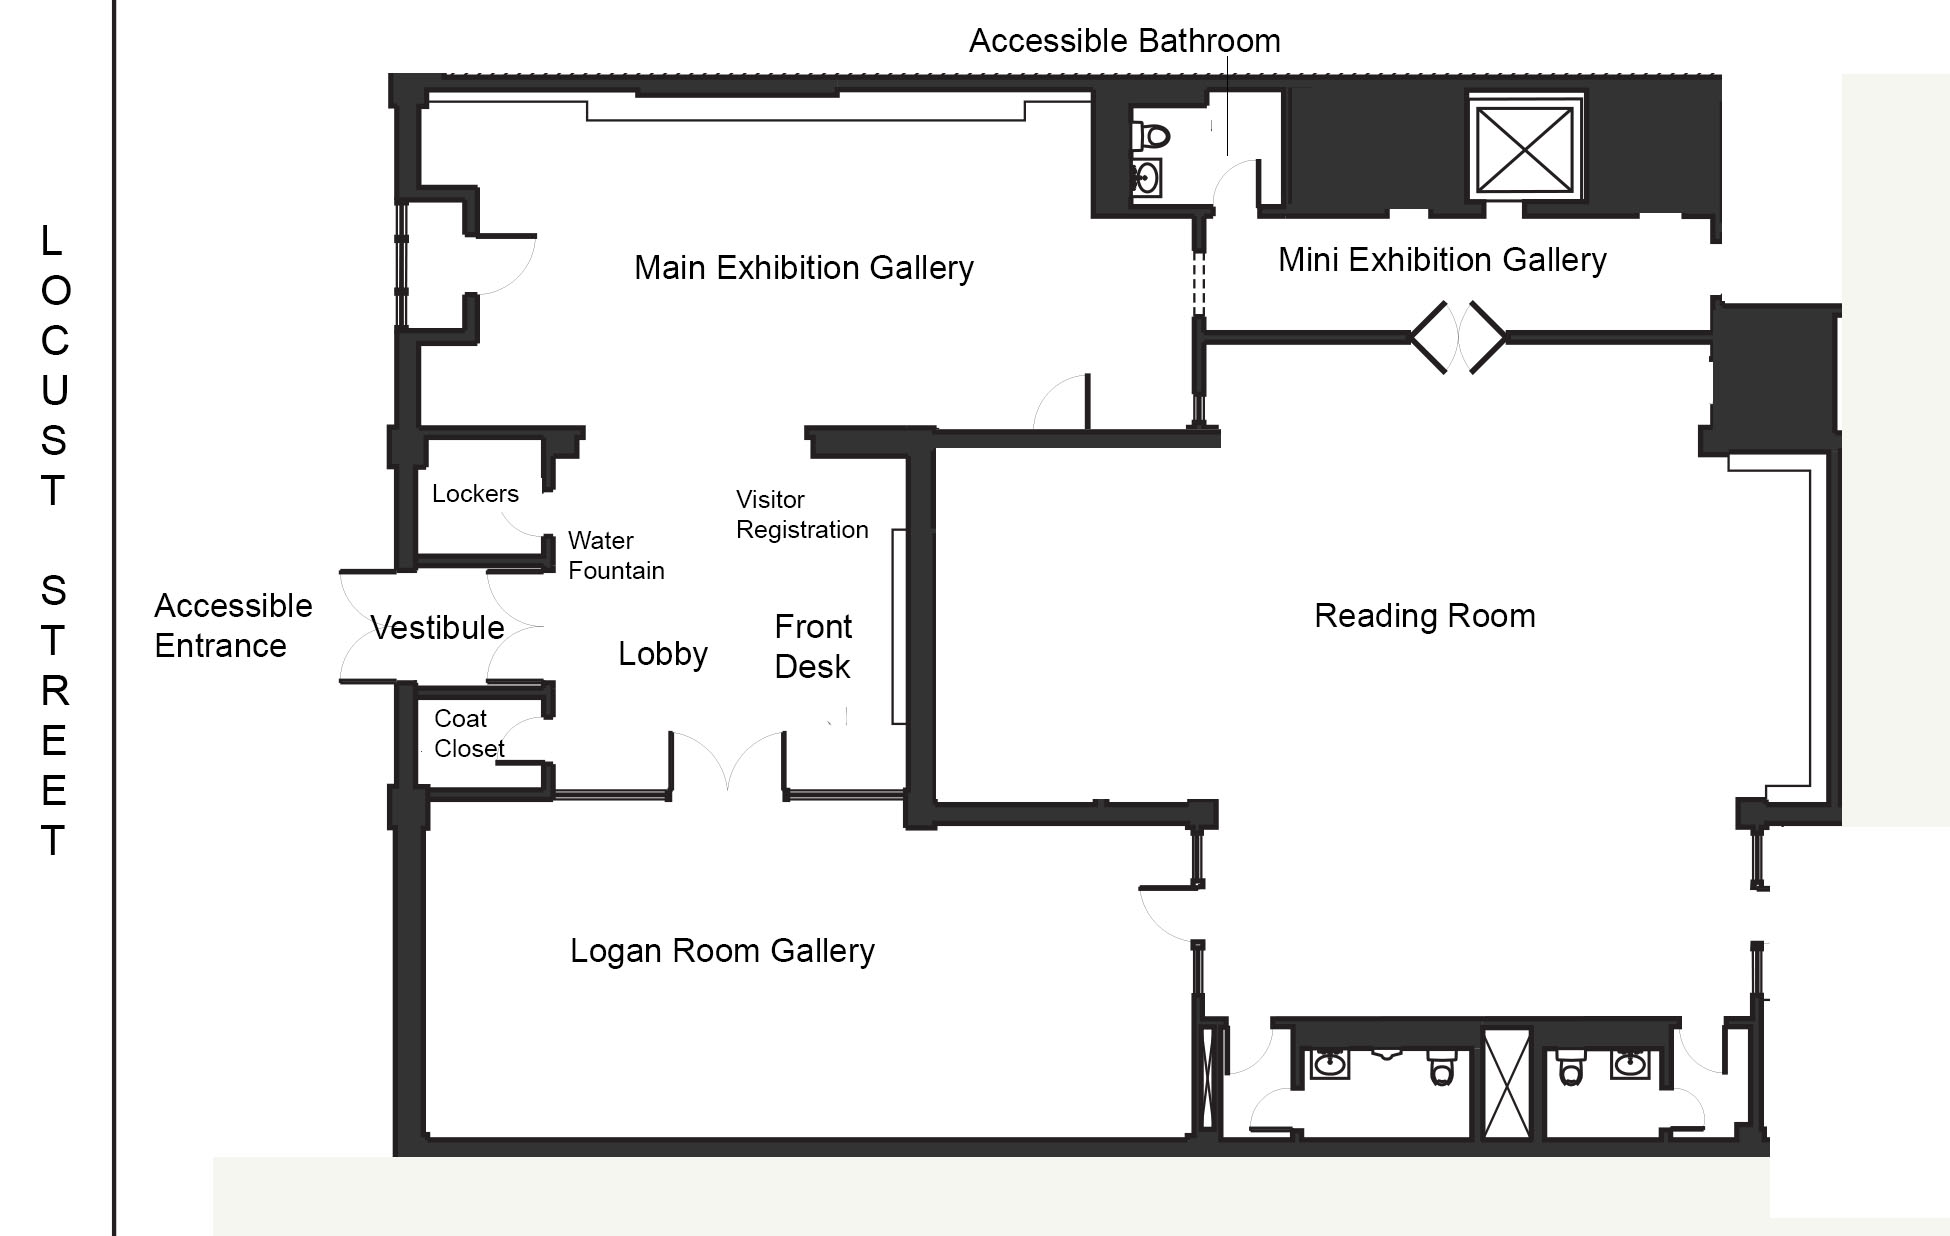 Picture shows first floor plan of the Library. Plan includes areas designated Accessible Entrance, Front Desk, Visitor Registration, Water Fountain, Main Exhibition Gallery, Accessible Bathroom, and Mini Exhibition Gallery. From Front Desk designated spaces move in a clockwise direction.